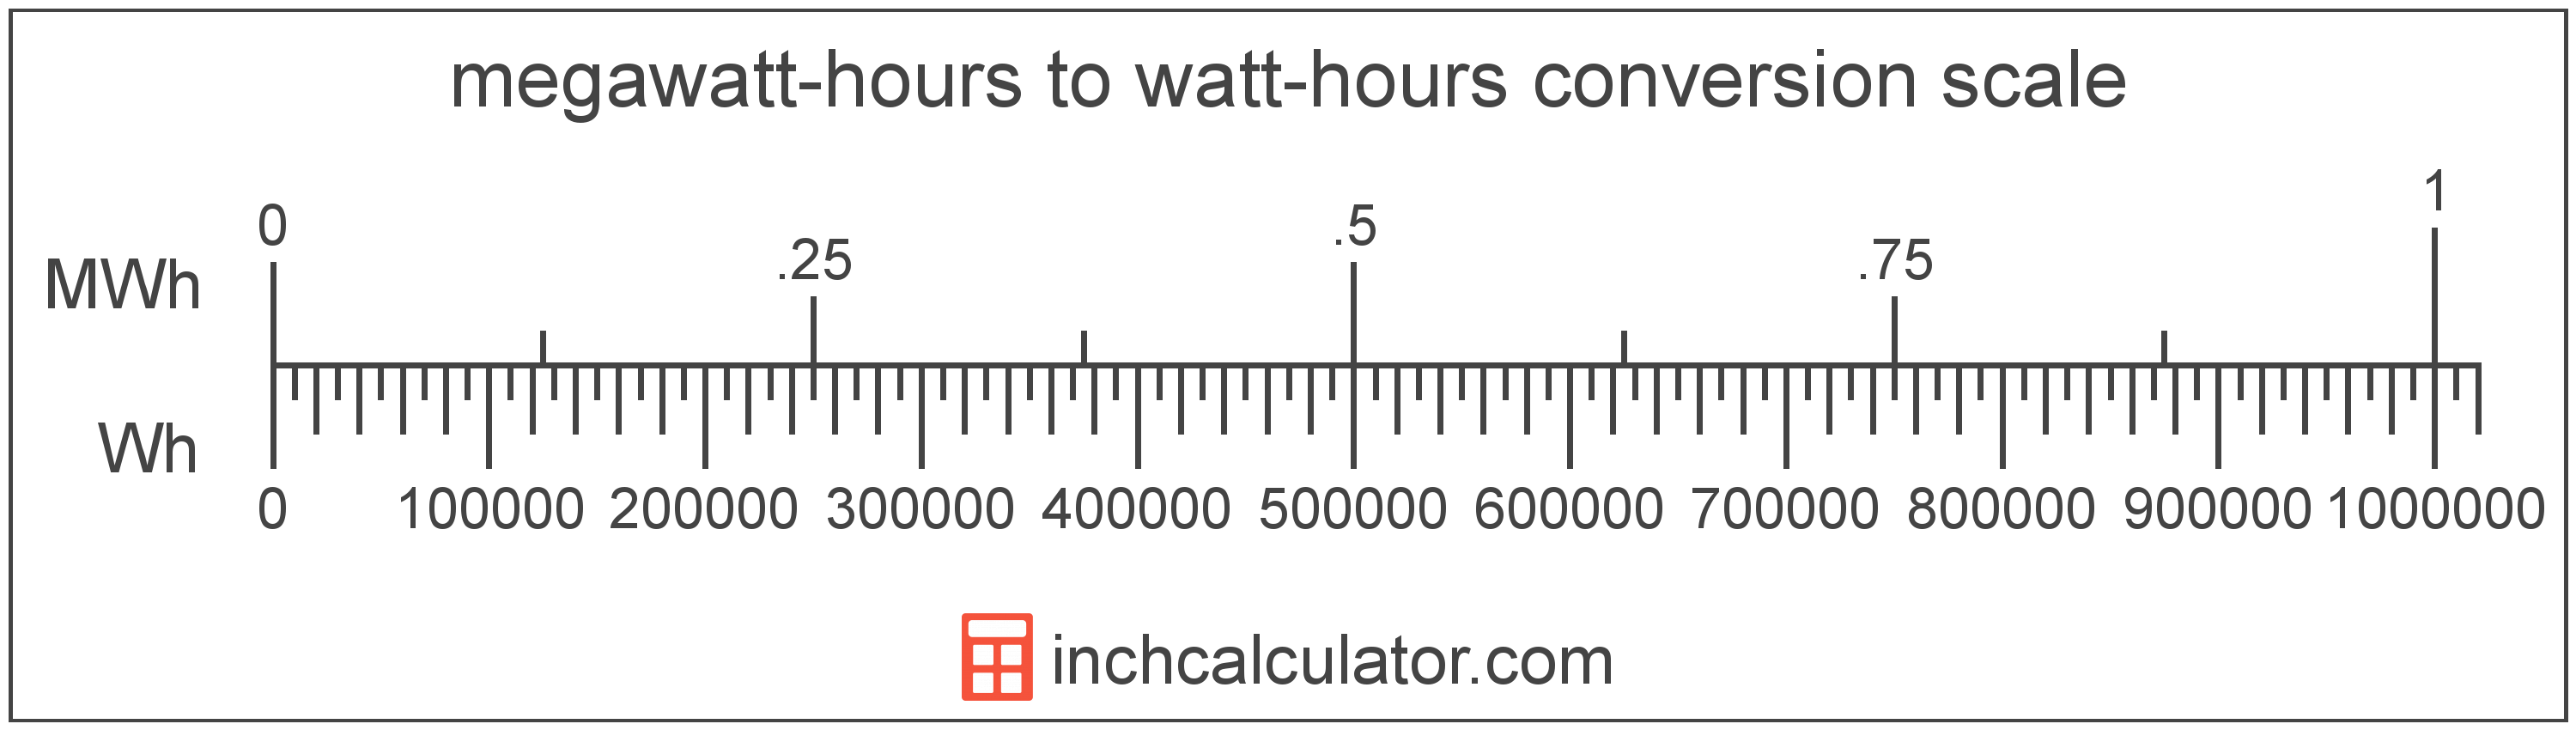 conversion scale showing watt-hours and equivalent megawatt-hours energy values